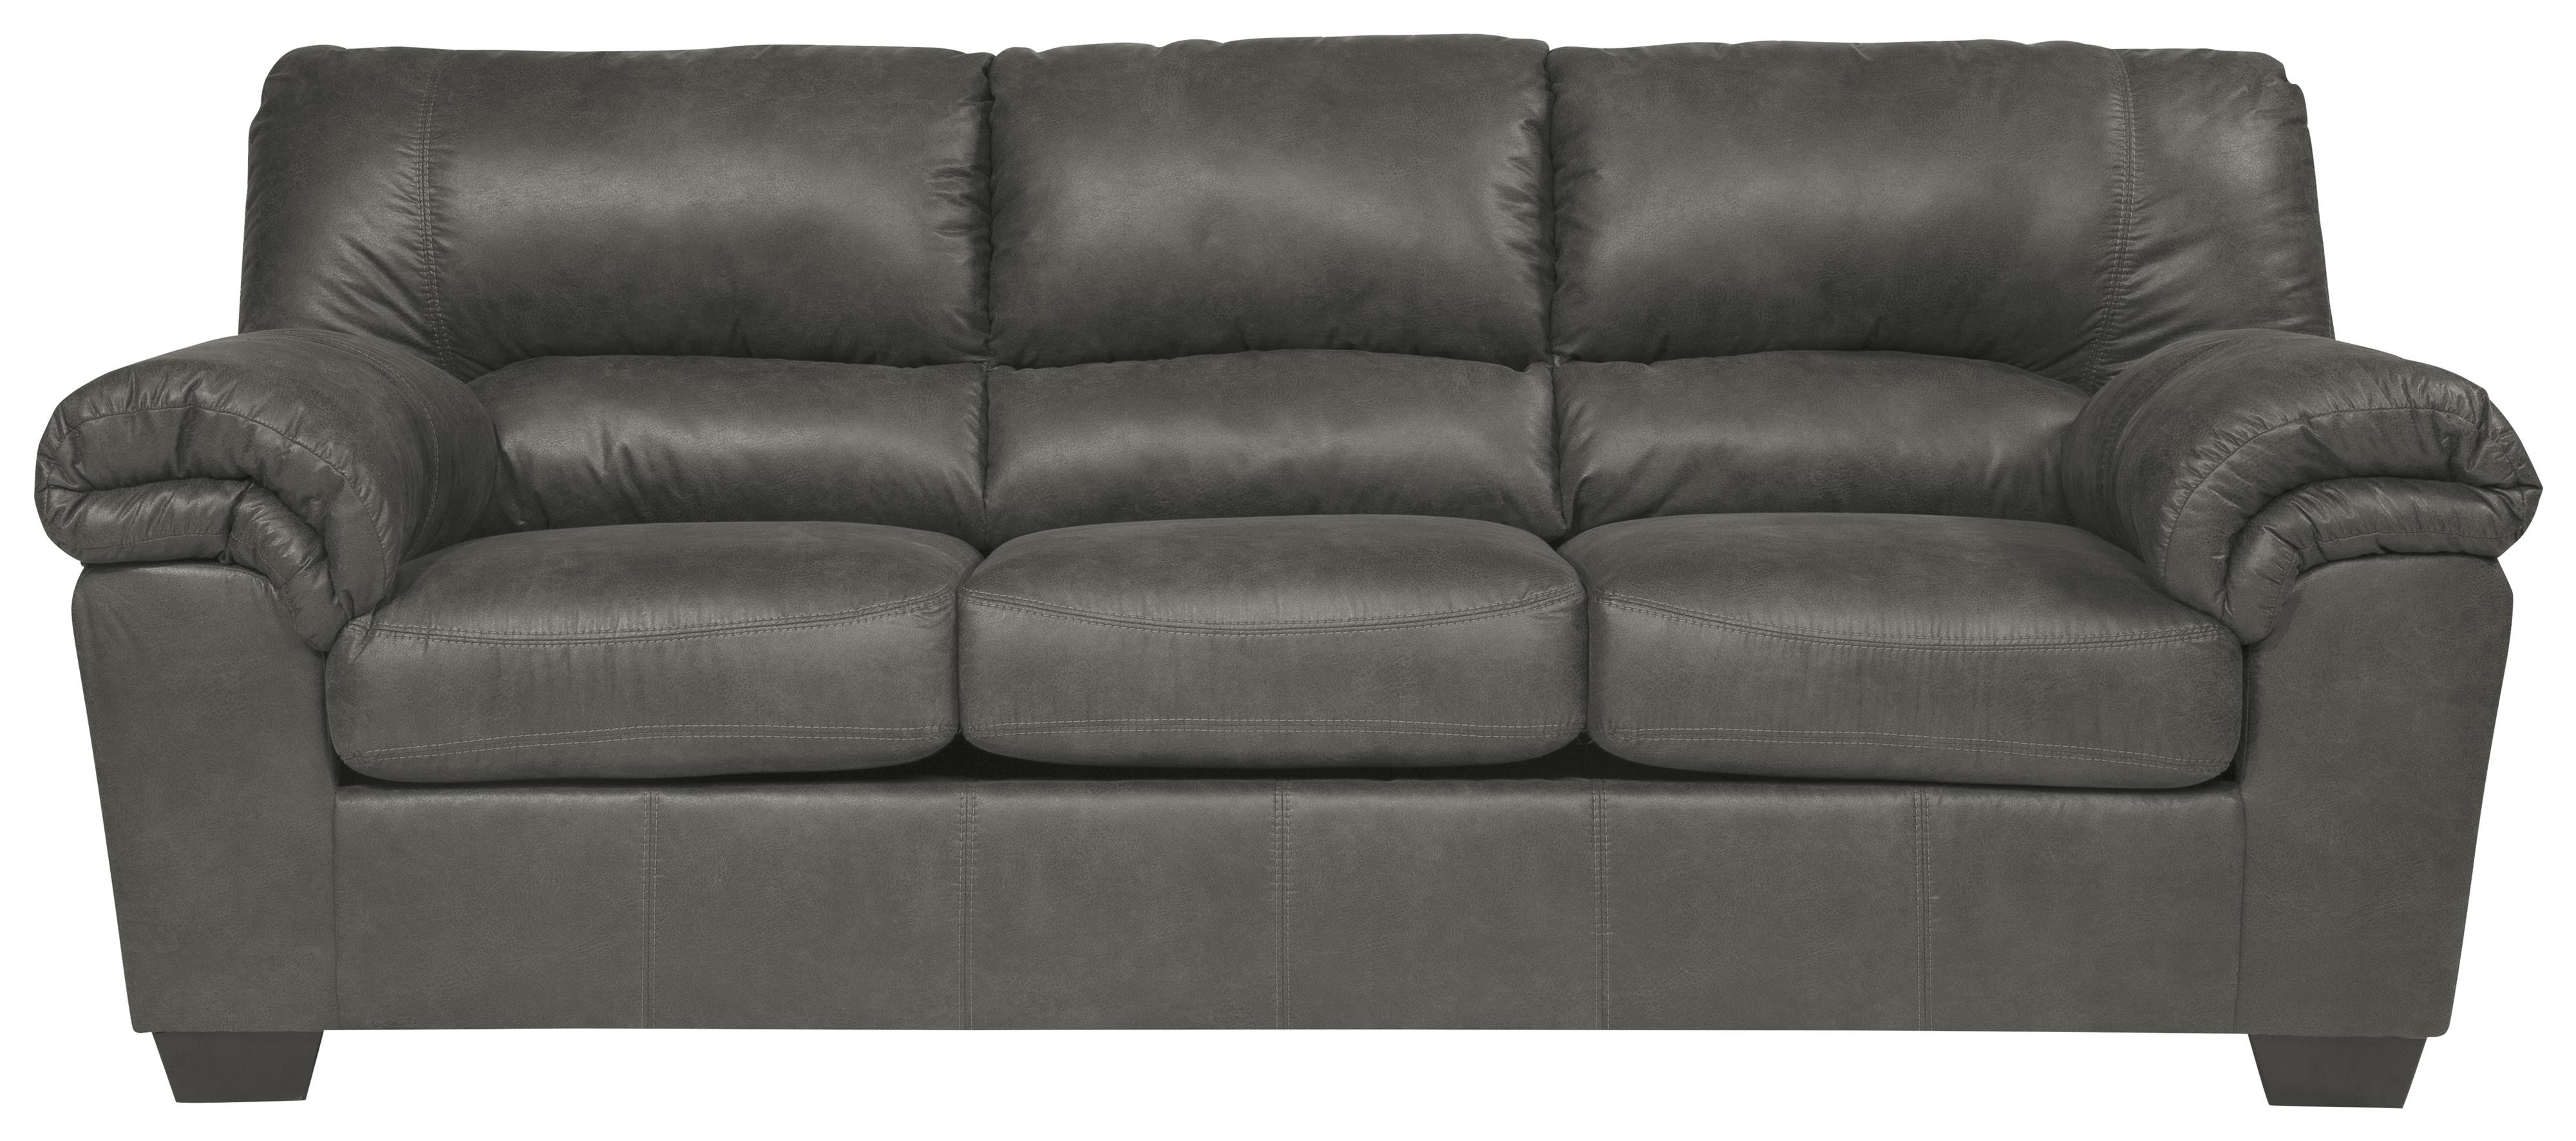 Signature Design by Ashley Bladen Sofa - Item Number: 1200138